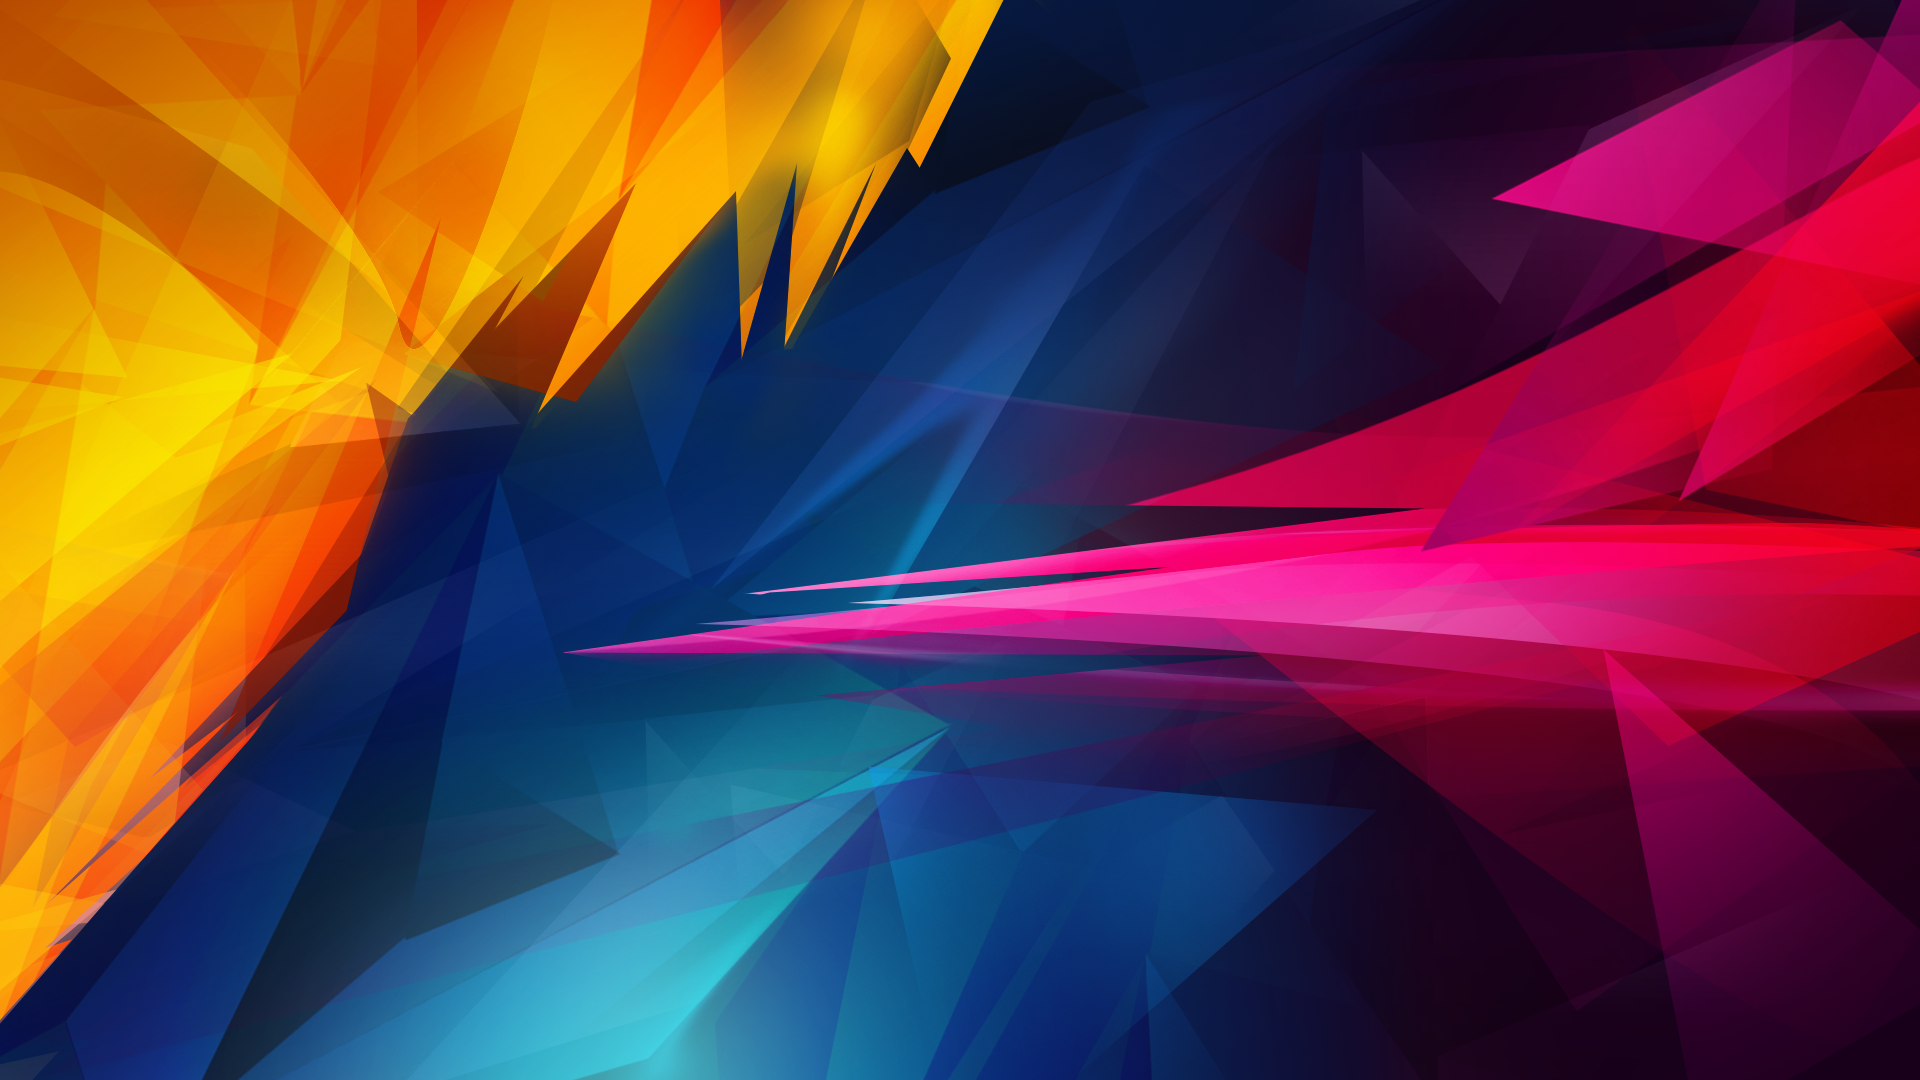 abstract hd wallpapers colors 4k